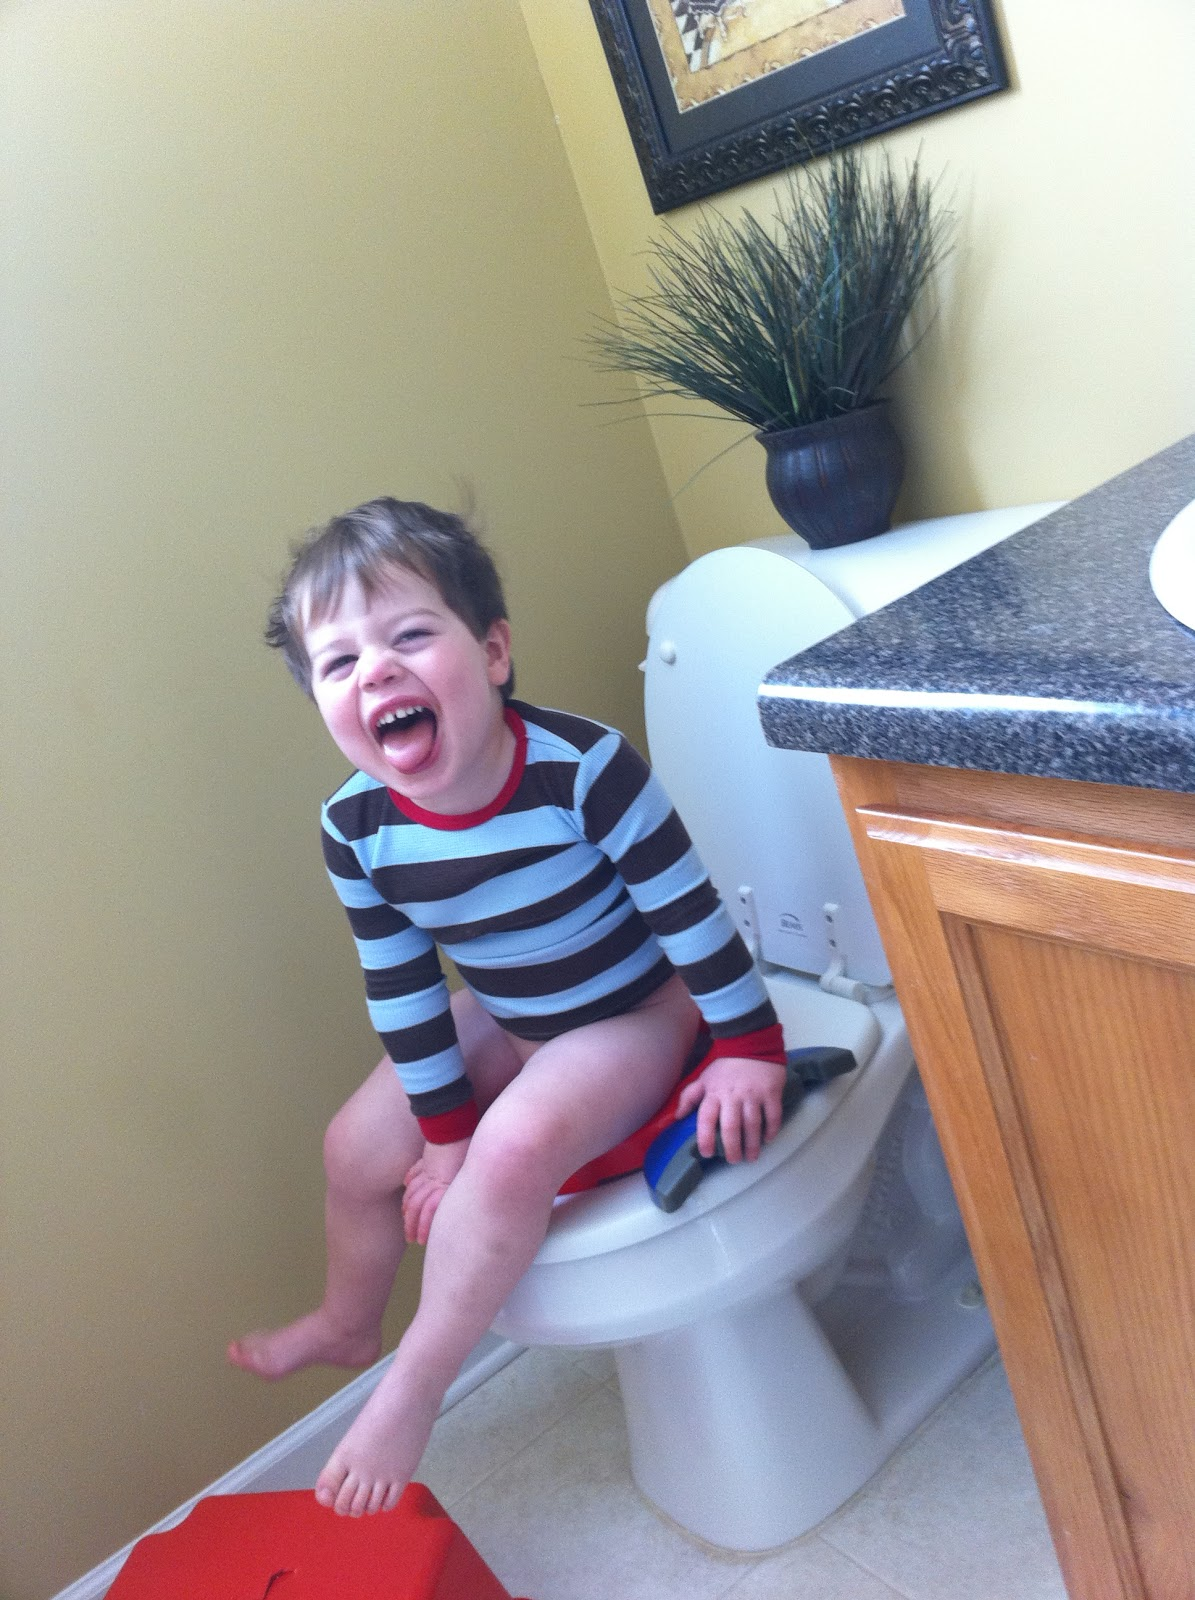 Toilet Anxiety- Should I Stay or Should I Go? | HuffPost Life